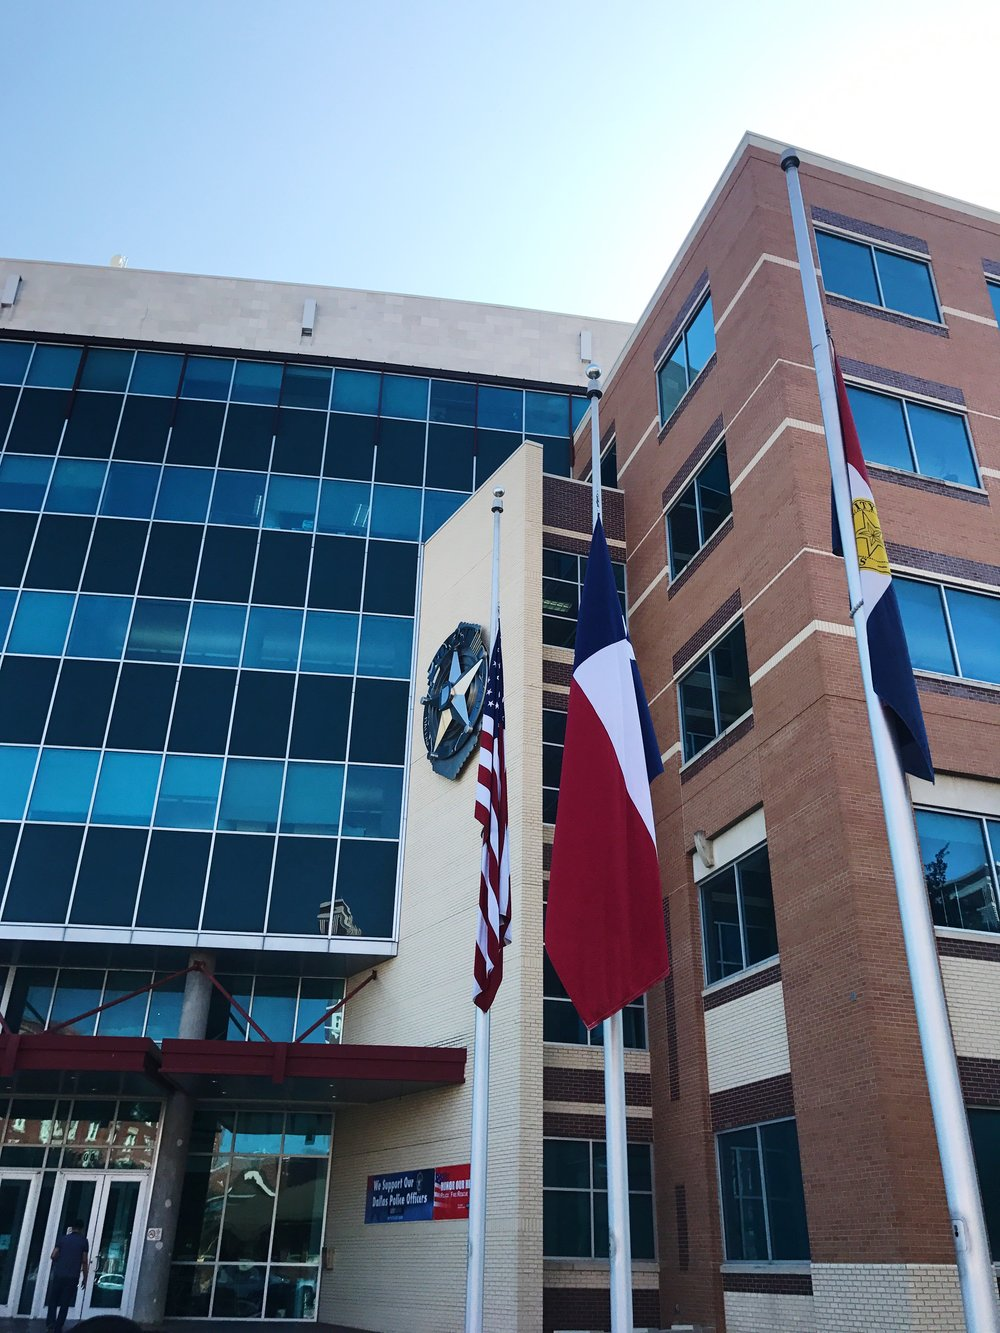 Flags fly at half staff in front of DPD headquarters